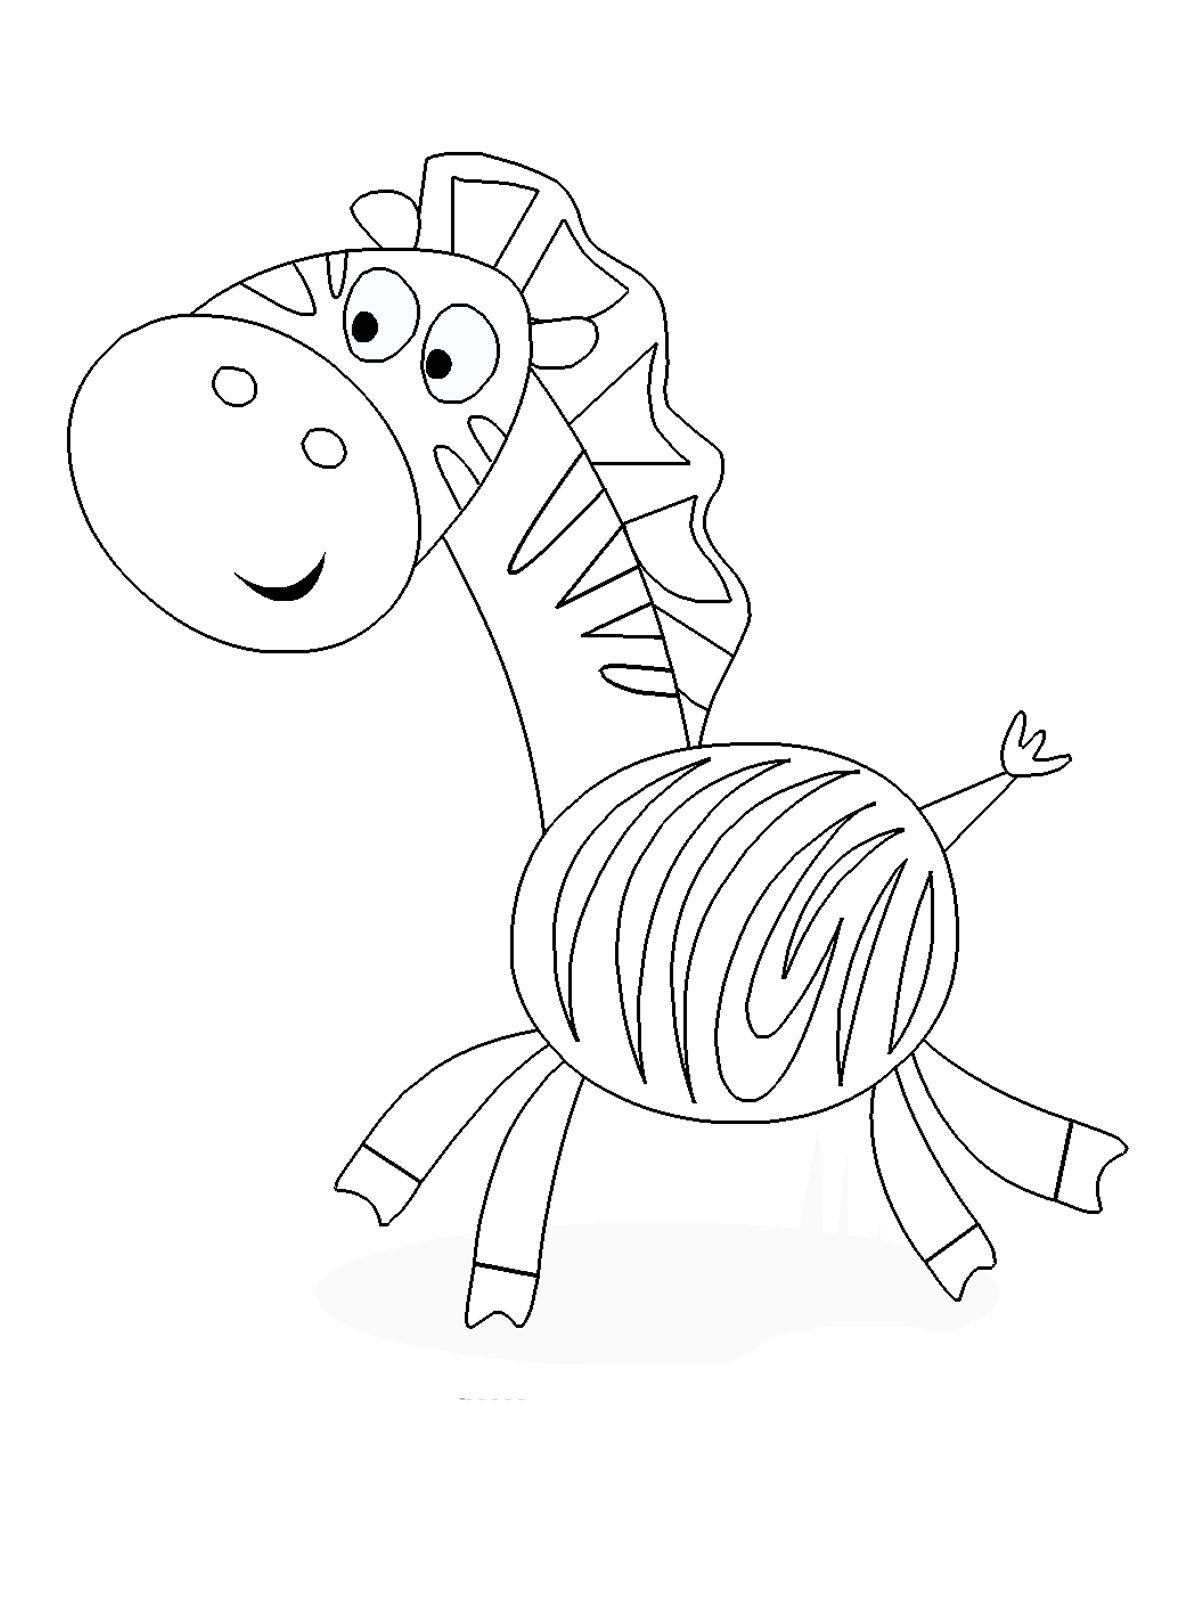 coloring pages for kids online free printable elsa coloring pages for kids best online pages kids coloring for